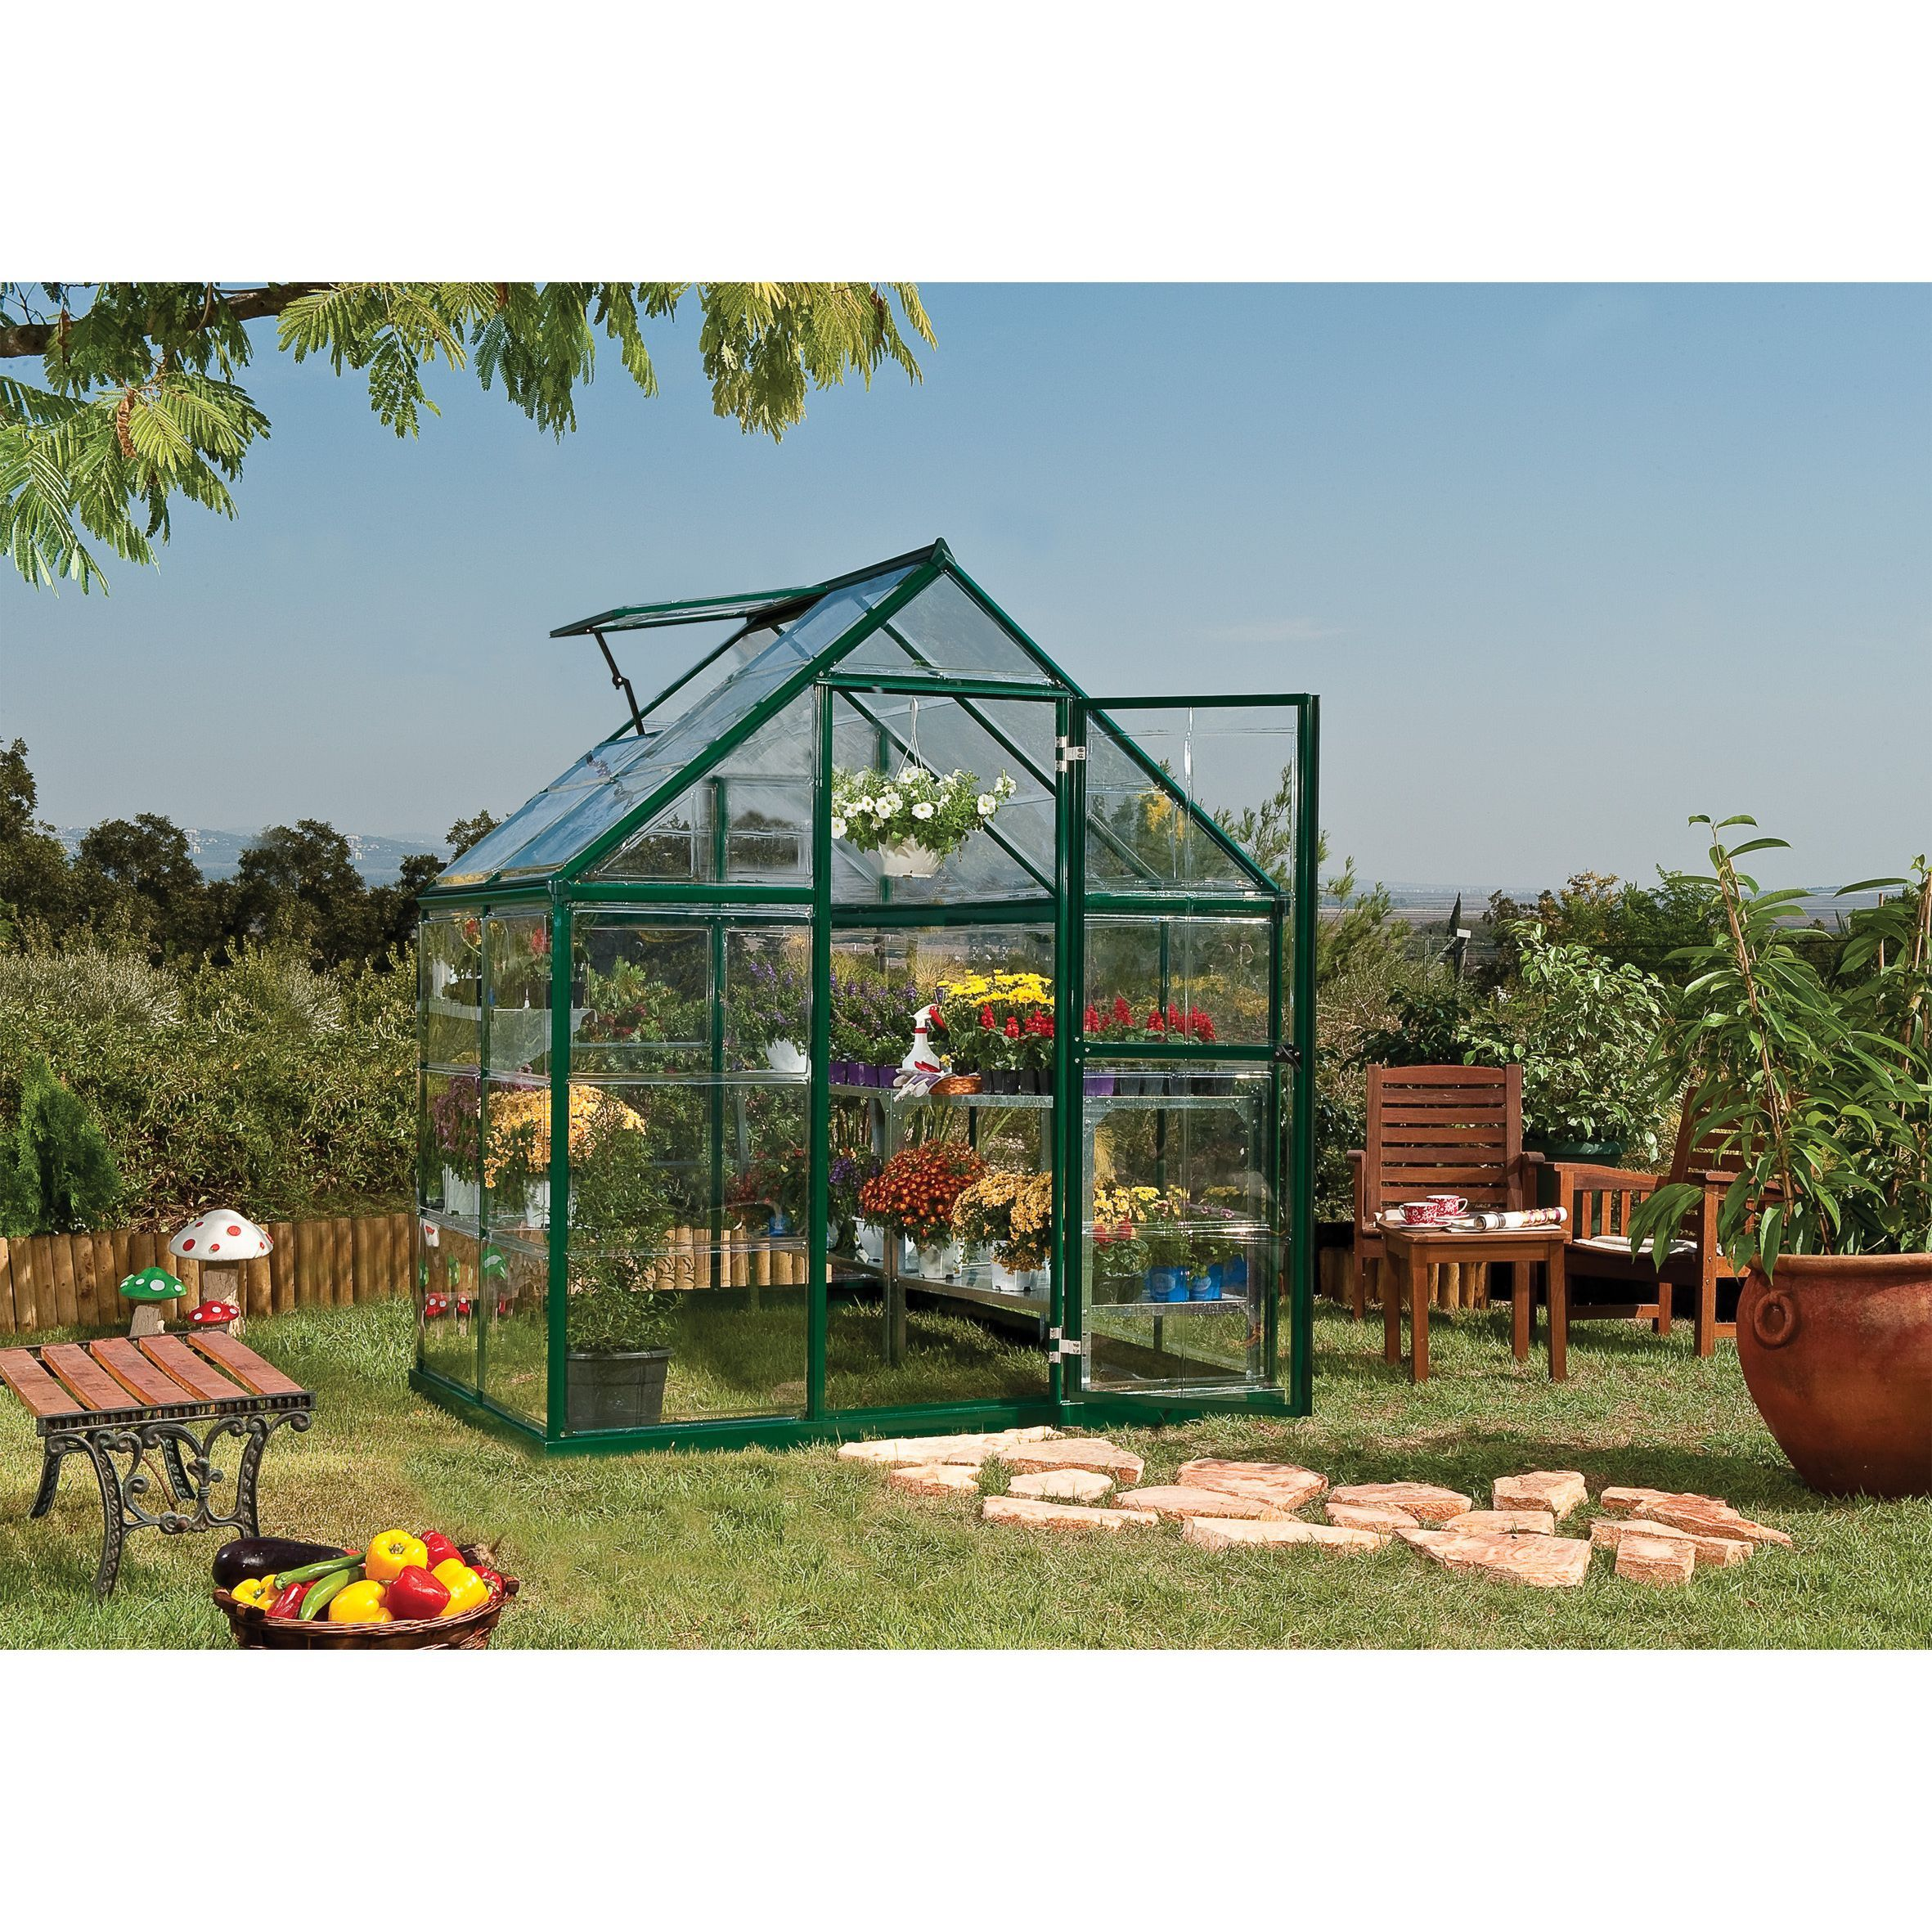 Harmony 6x4 is a smart, beautiful & sturdy structure. It's corrosion resistant & durable powder coated aluminum frame and crystal clear virtually unbreakable polycarbonate panels are practically maintenance free.